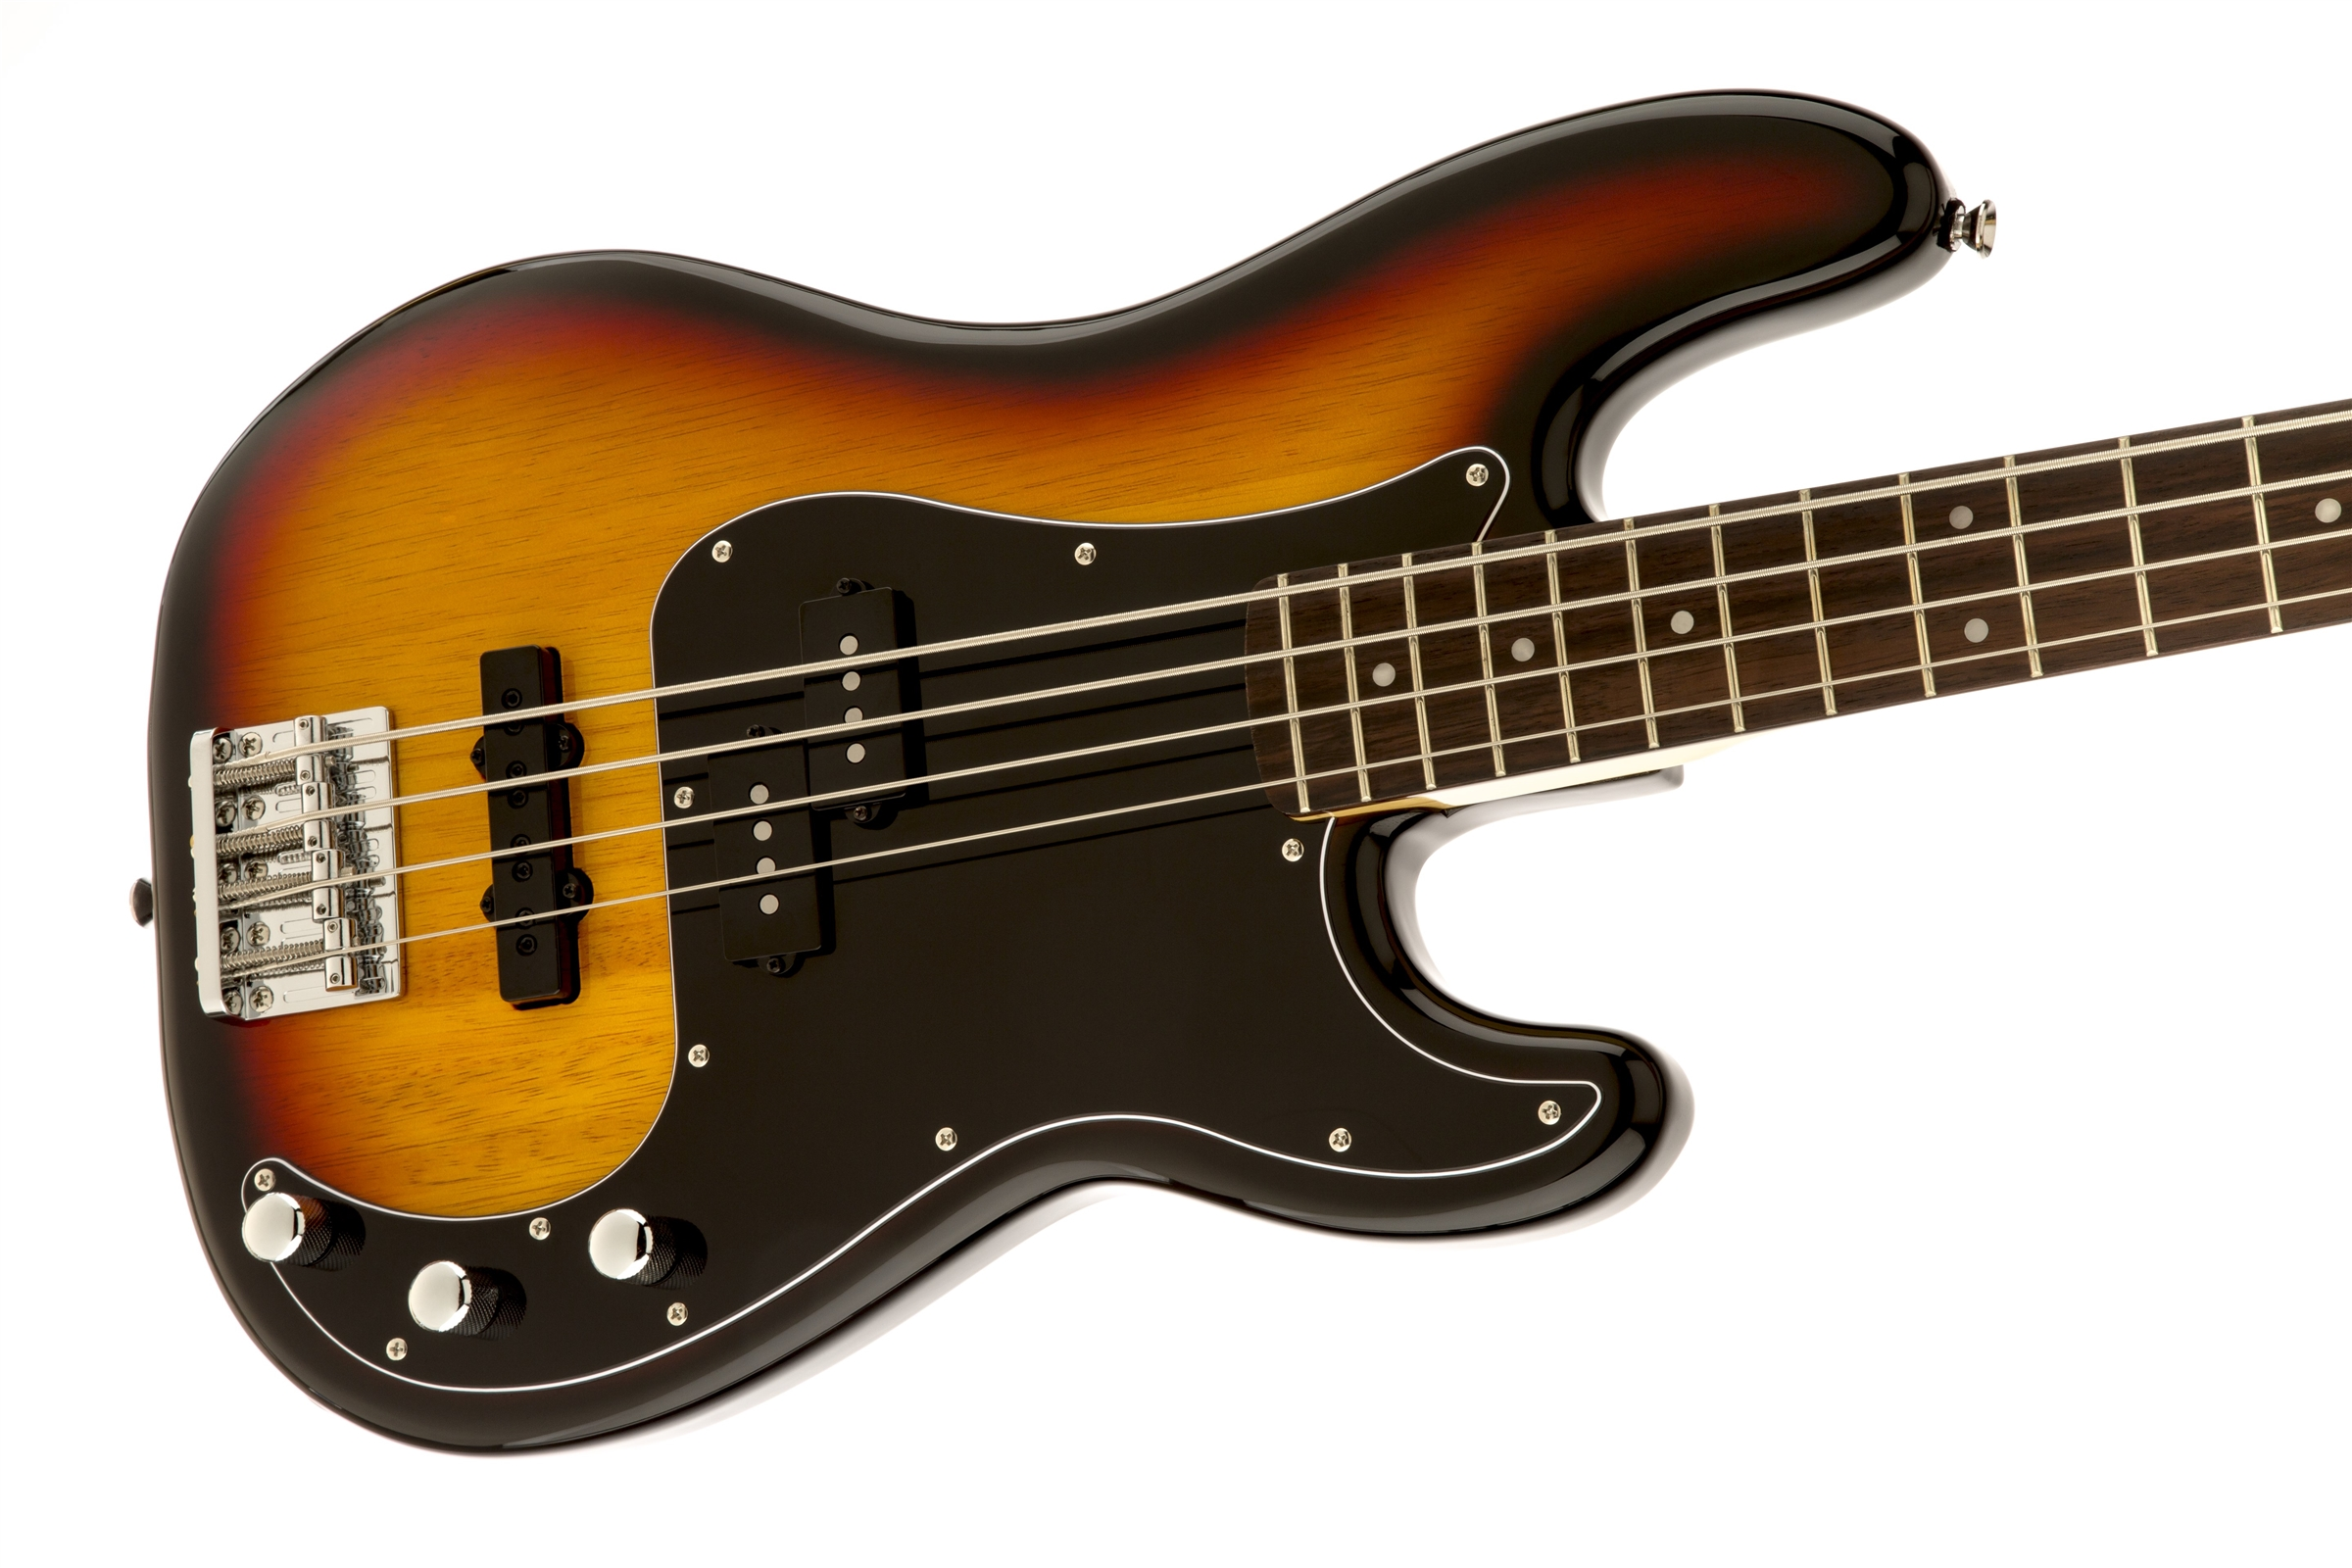 squier vintage modified precision bass pj squier bass guitars. Black Bedroom Furniture Sets. Home Design Ideas